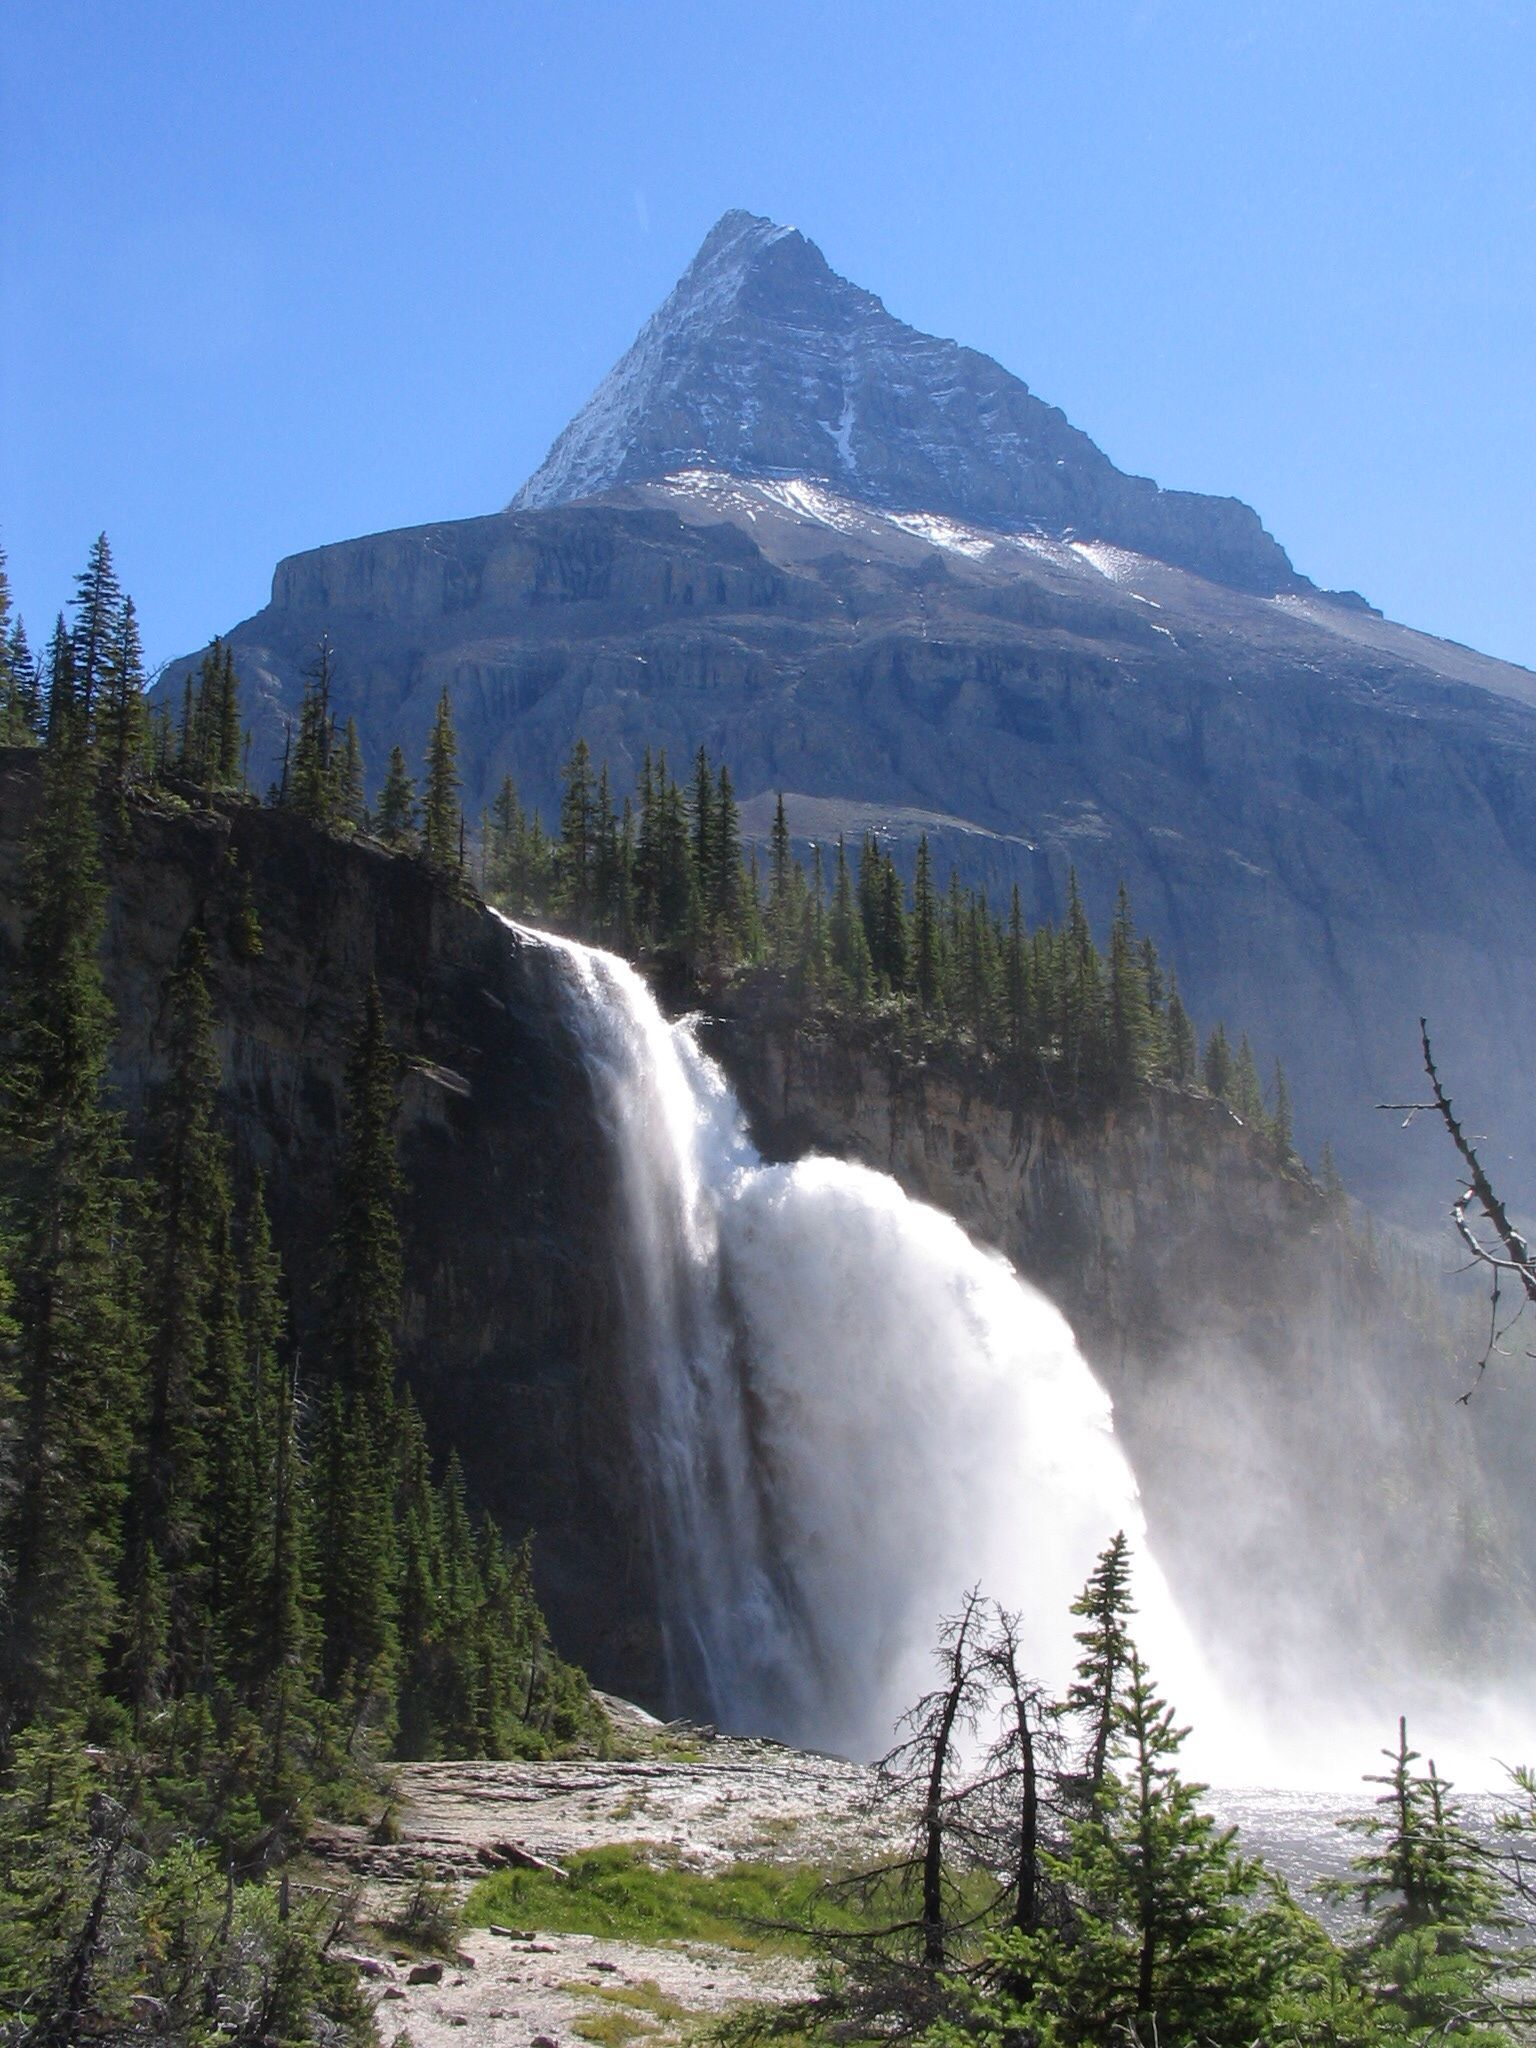 Emperor Falls is the largest and best known waterfall on